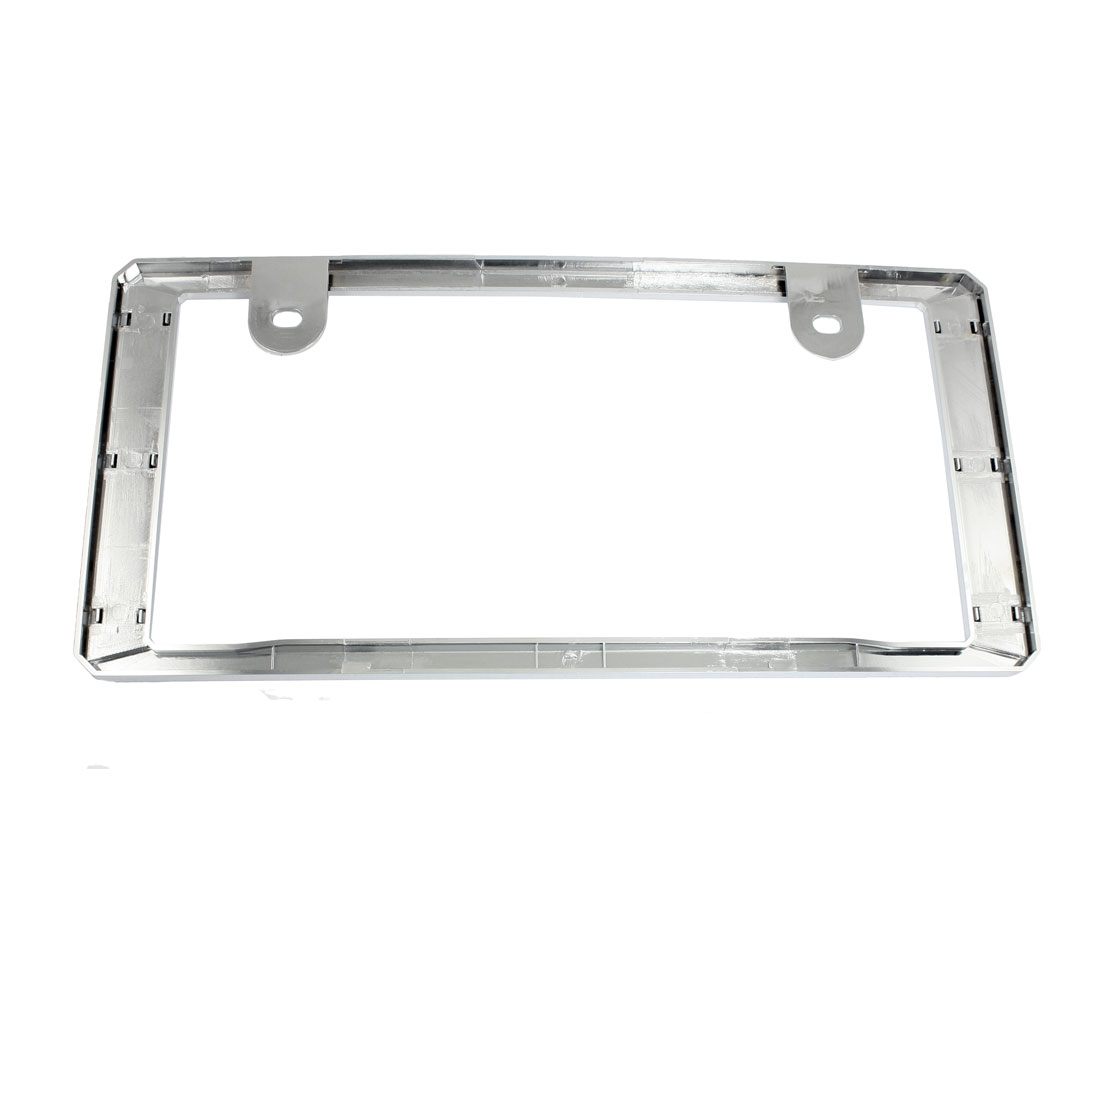 Chrome Plastic License Plate Frame Plate Holder Silver Tone for Car